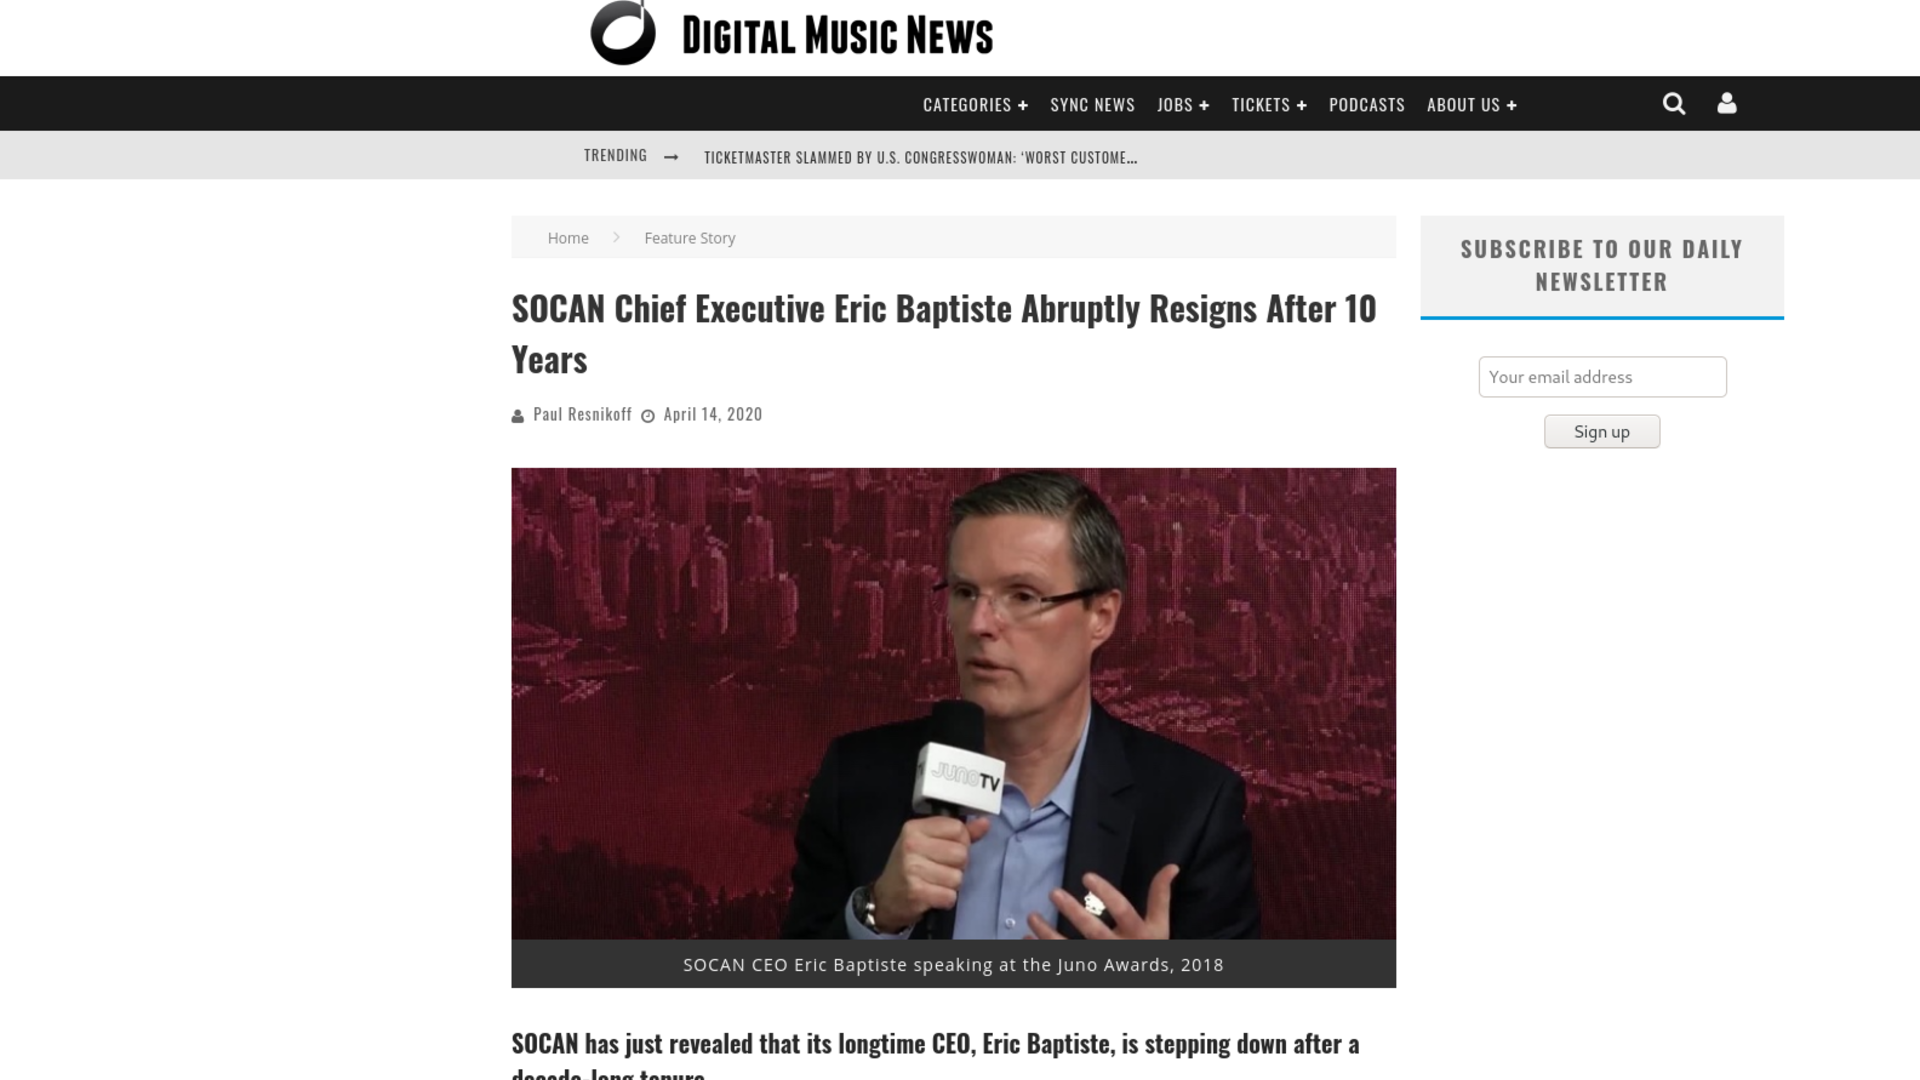 Fairness Rocks News SOCAN Chief Executive Eric Baptiste Abruptly Resigns After 10 Years